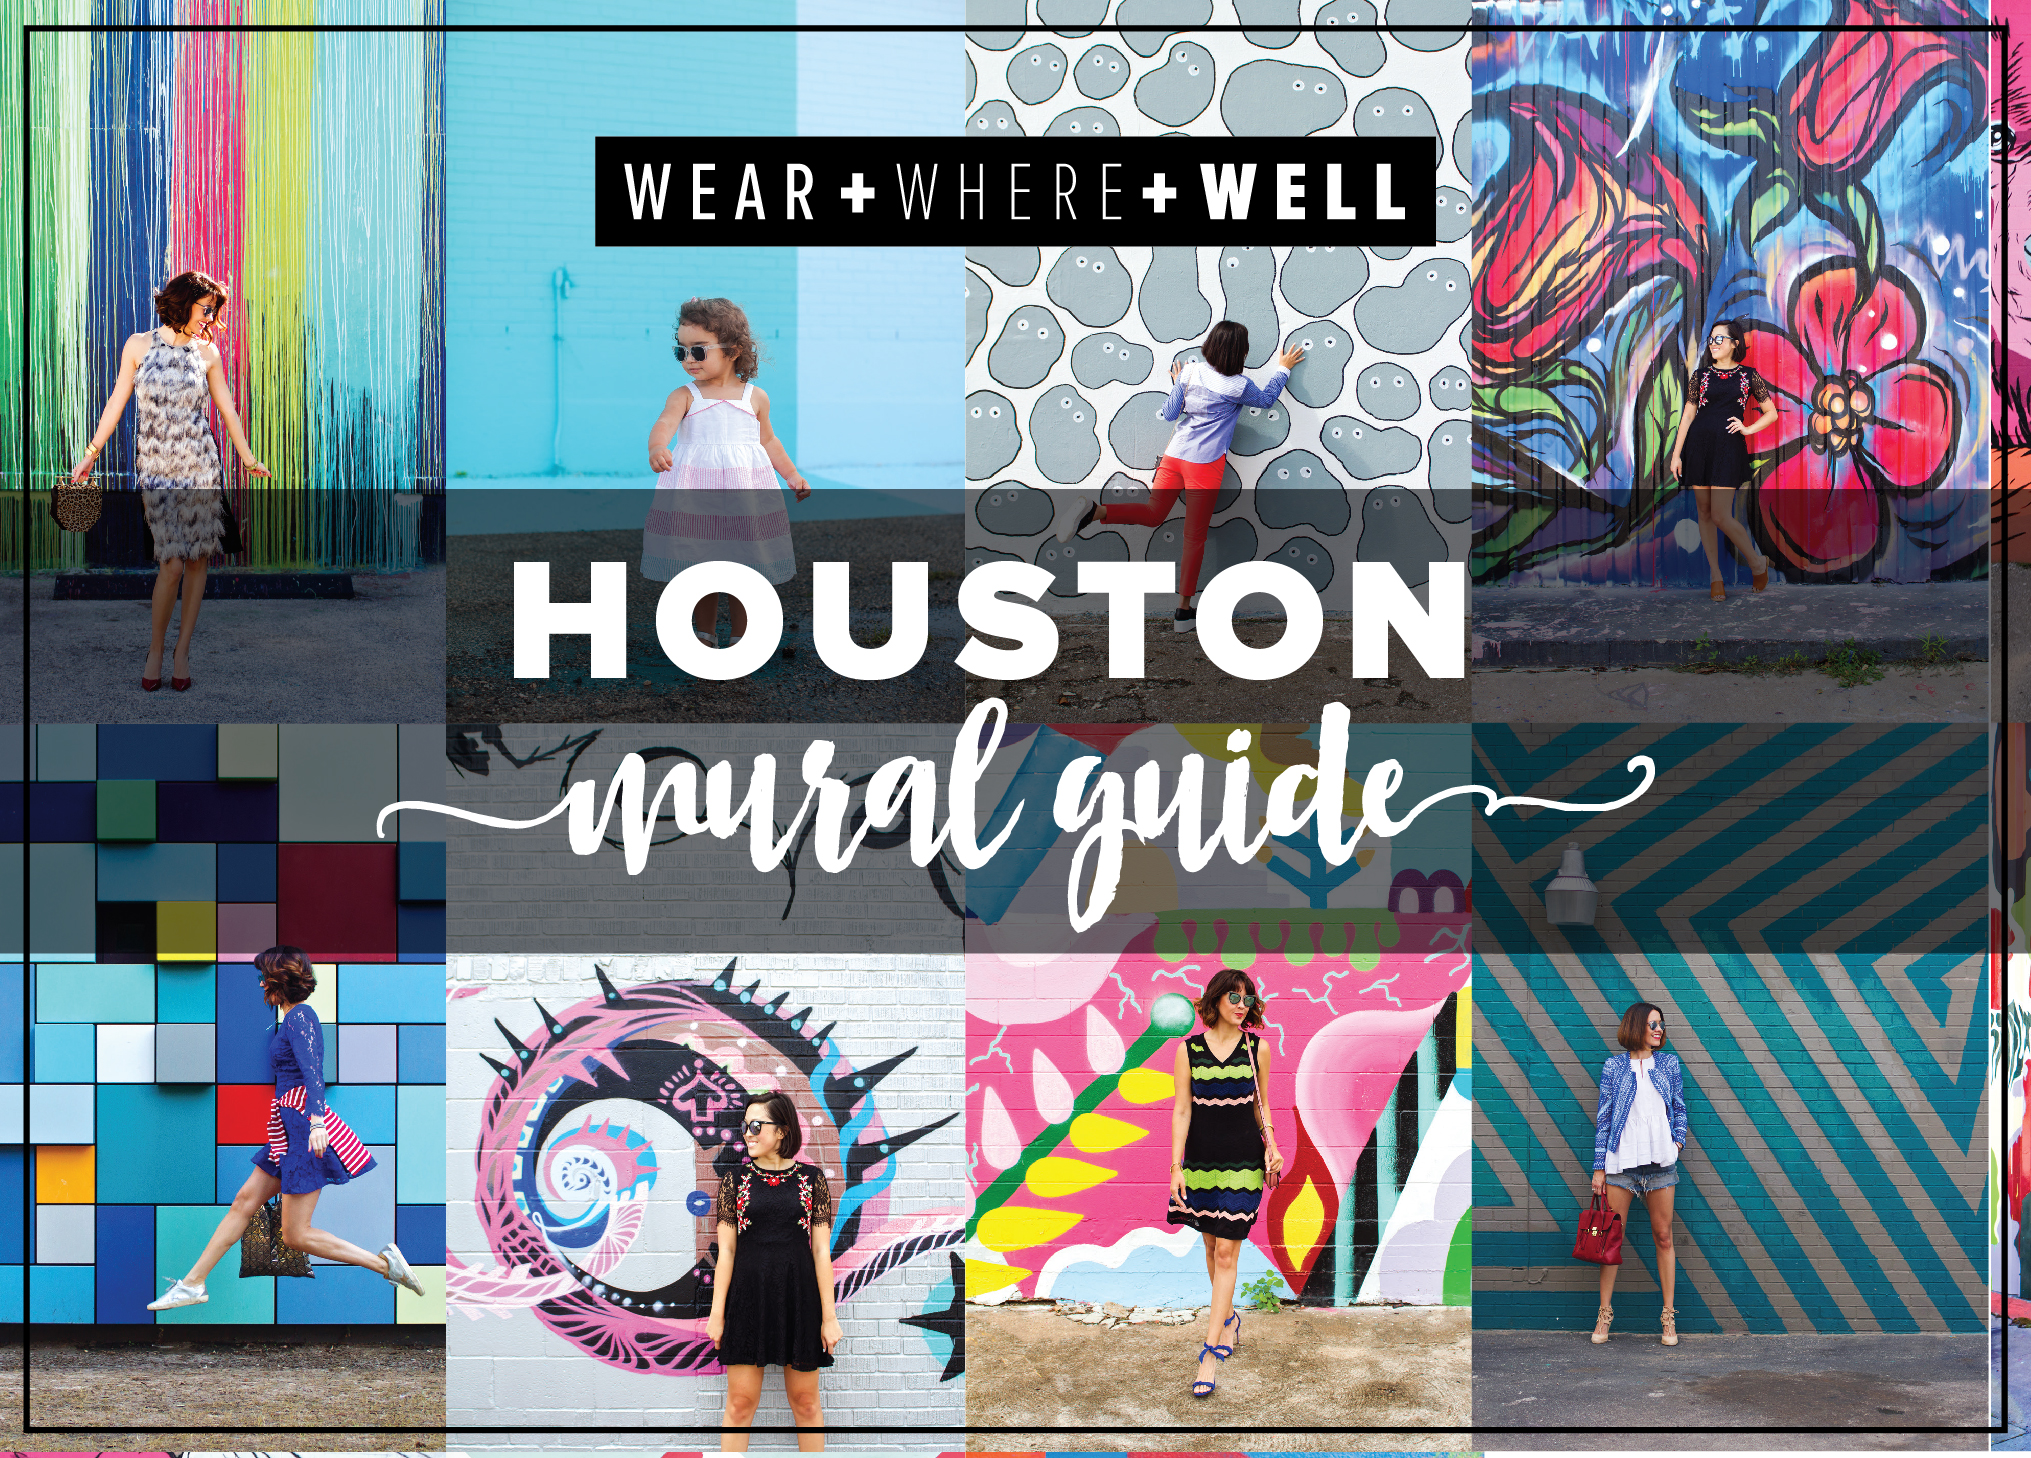 Houston Mural Guide - Wear + Where + Well